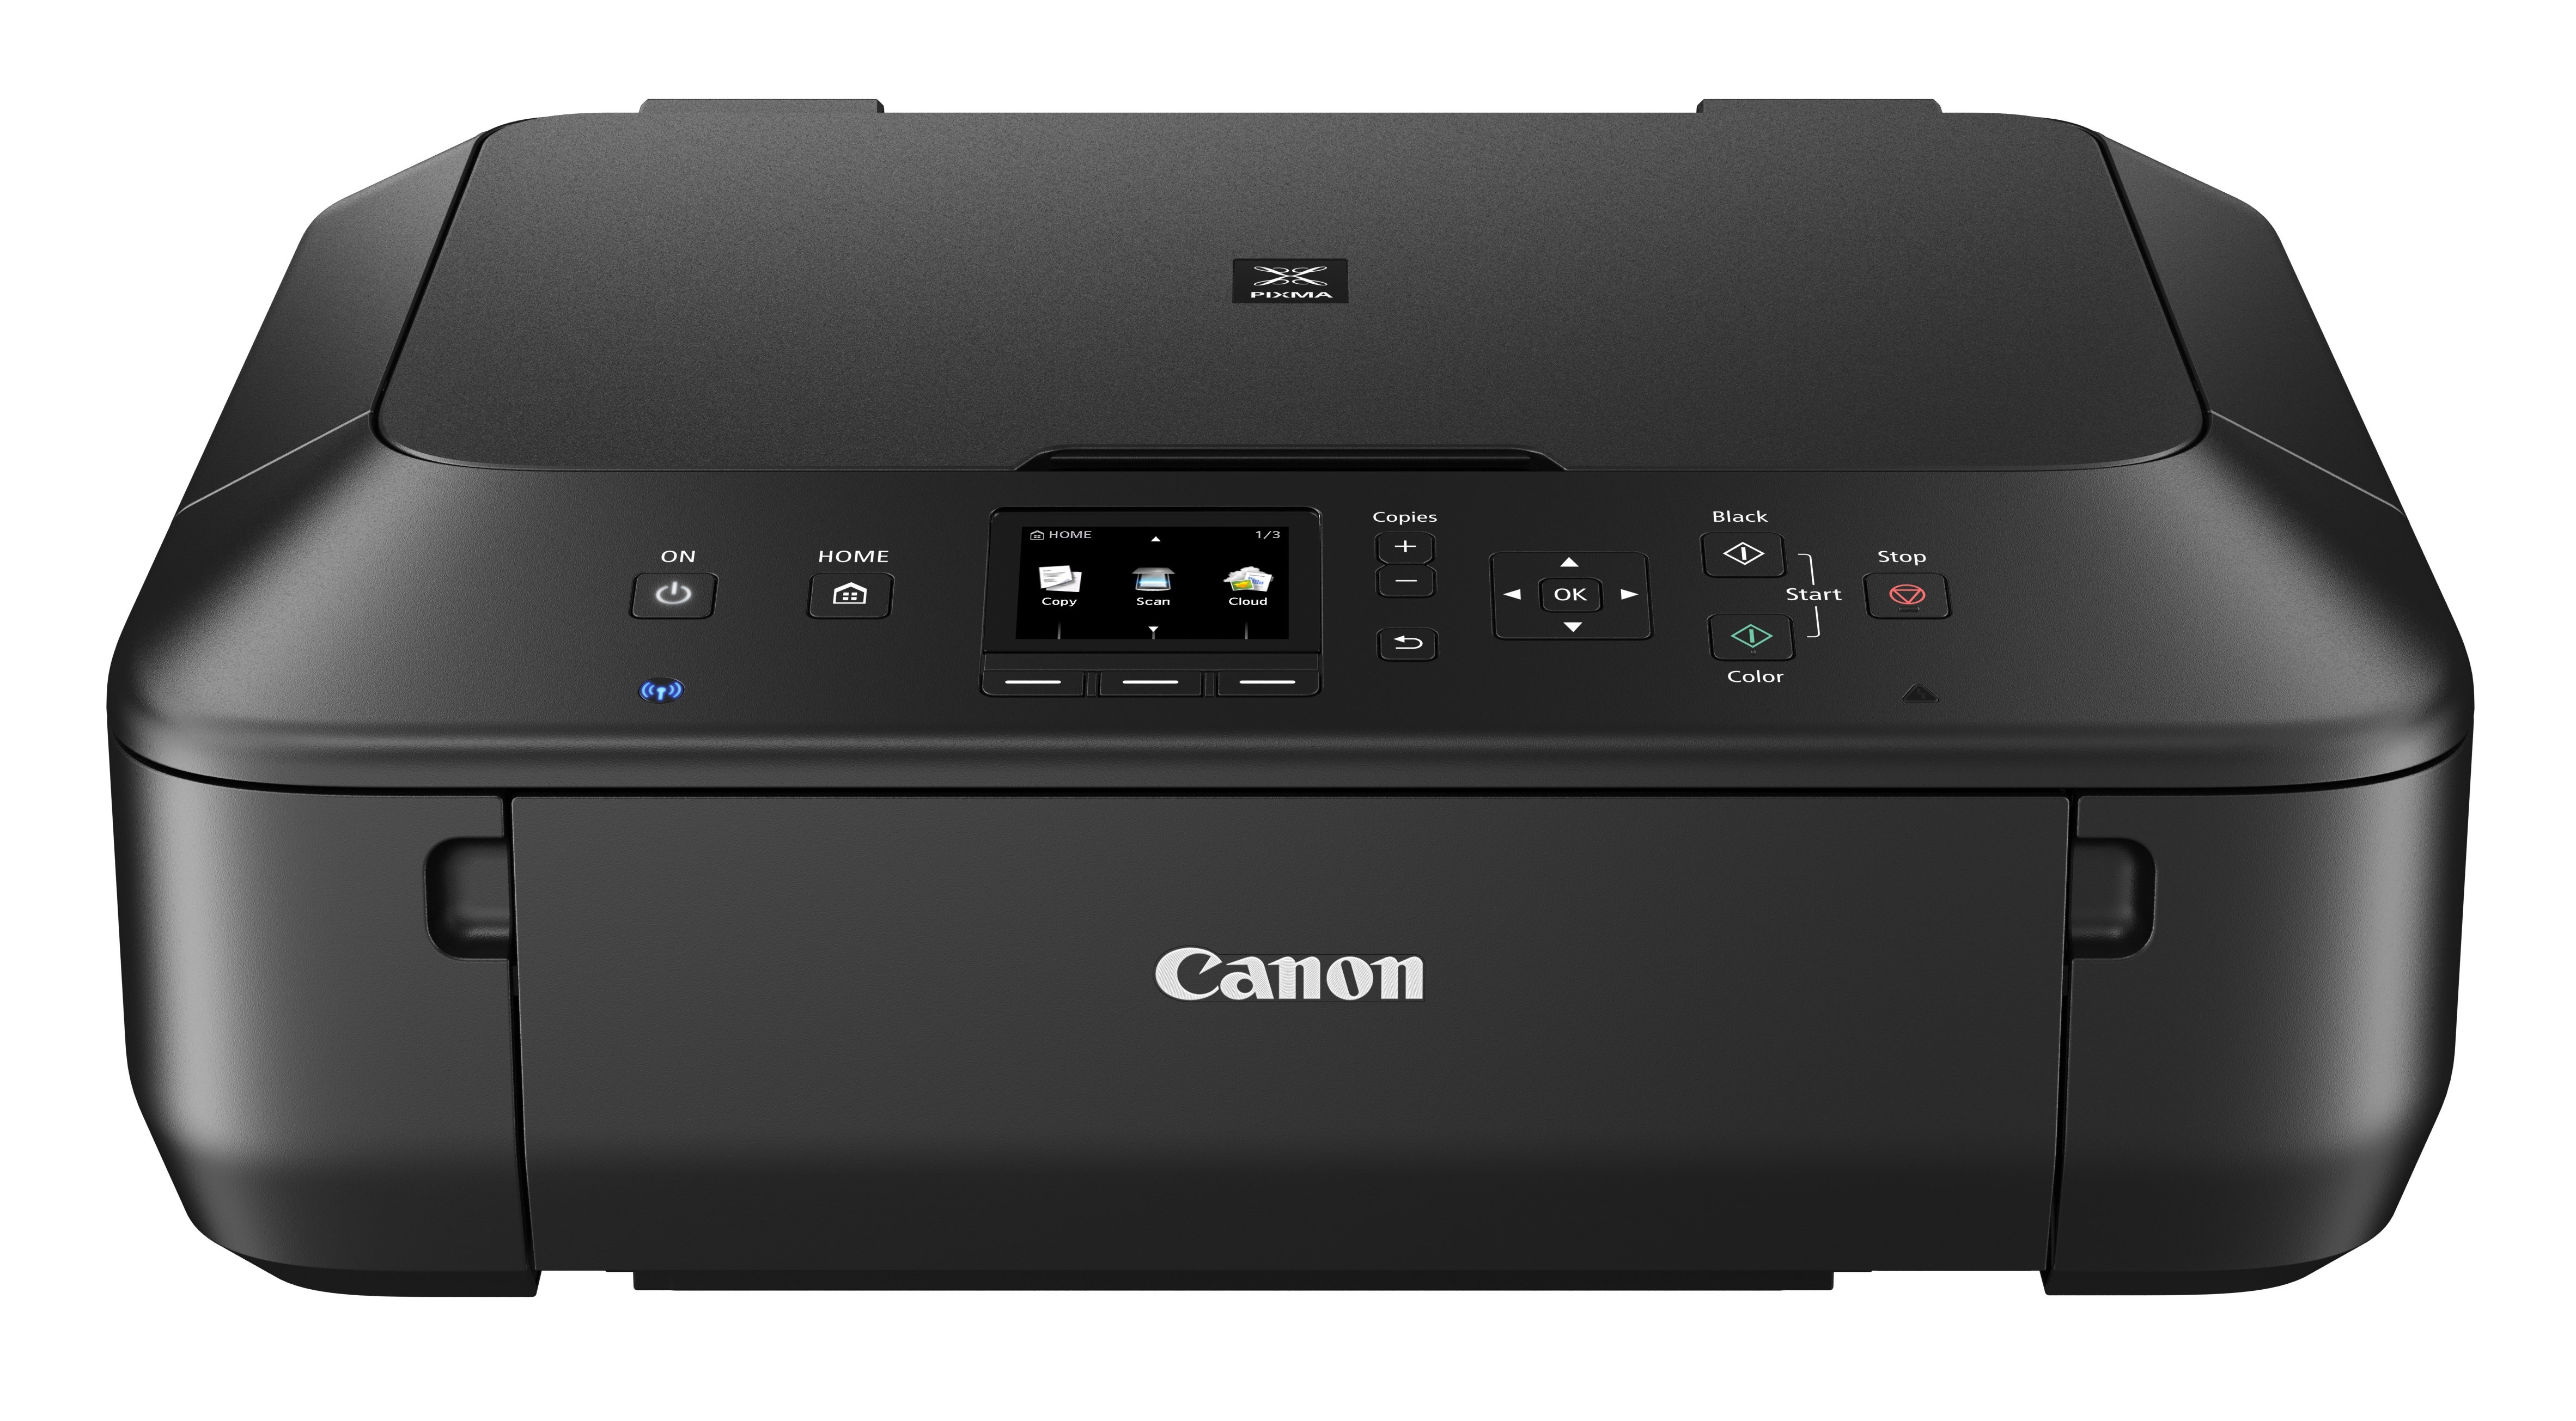 canon service center in nanganallur, canon printer service center in nanganallur